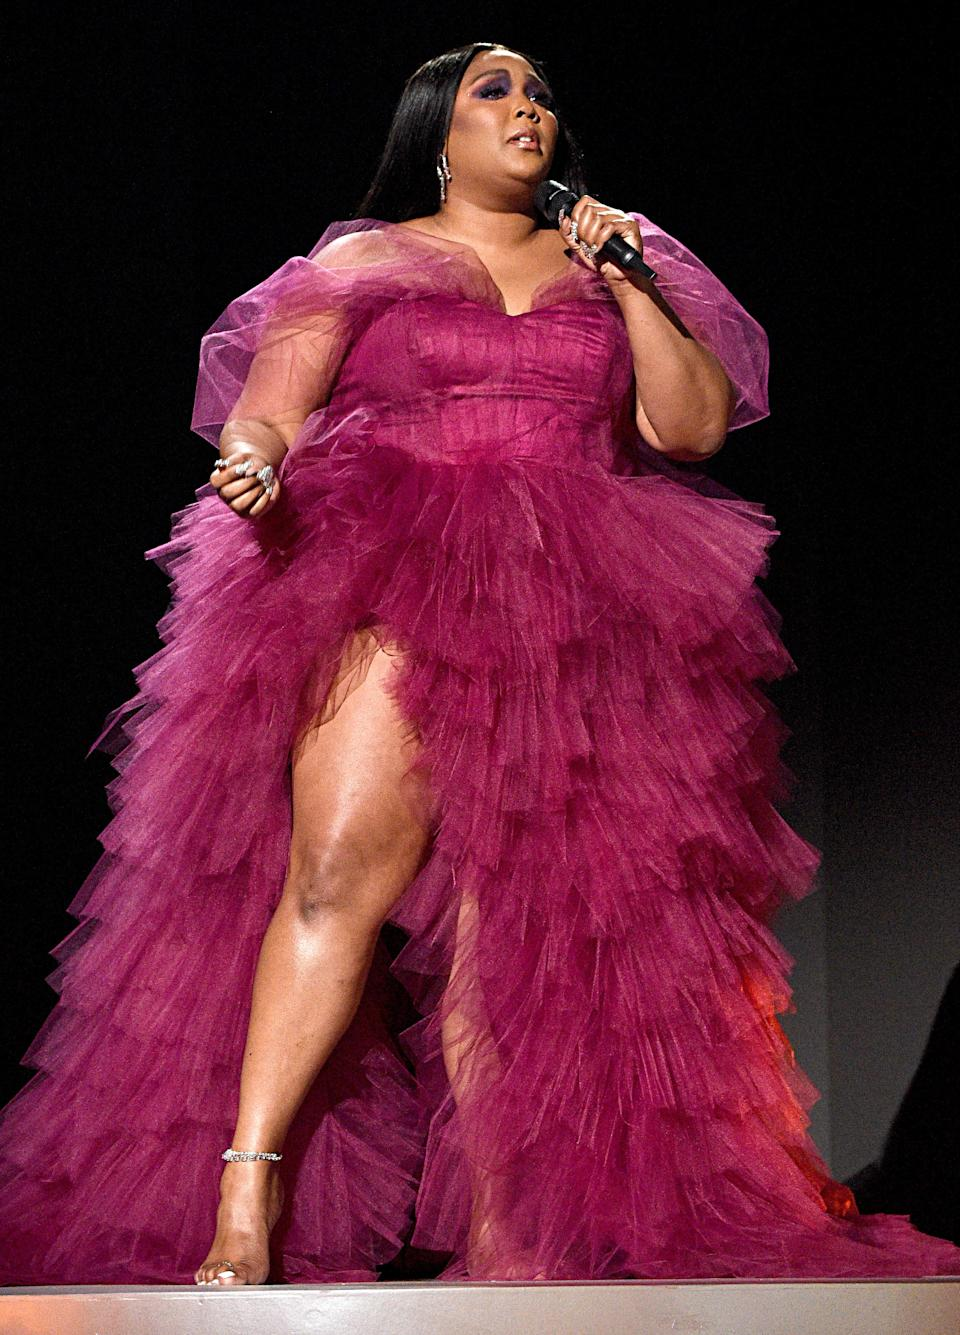 Lizzo looked like a dream when she took over the AMA stage in this plum gown with a thigh-slit courtesy of Dauxilly.